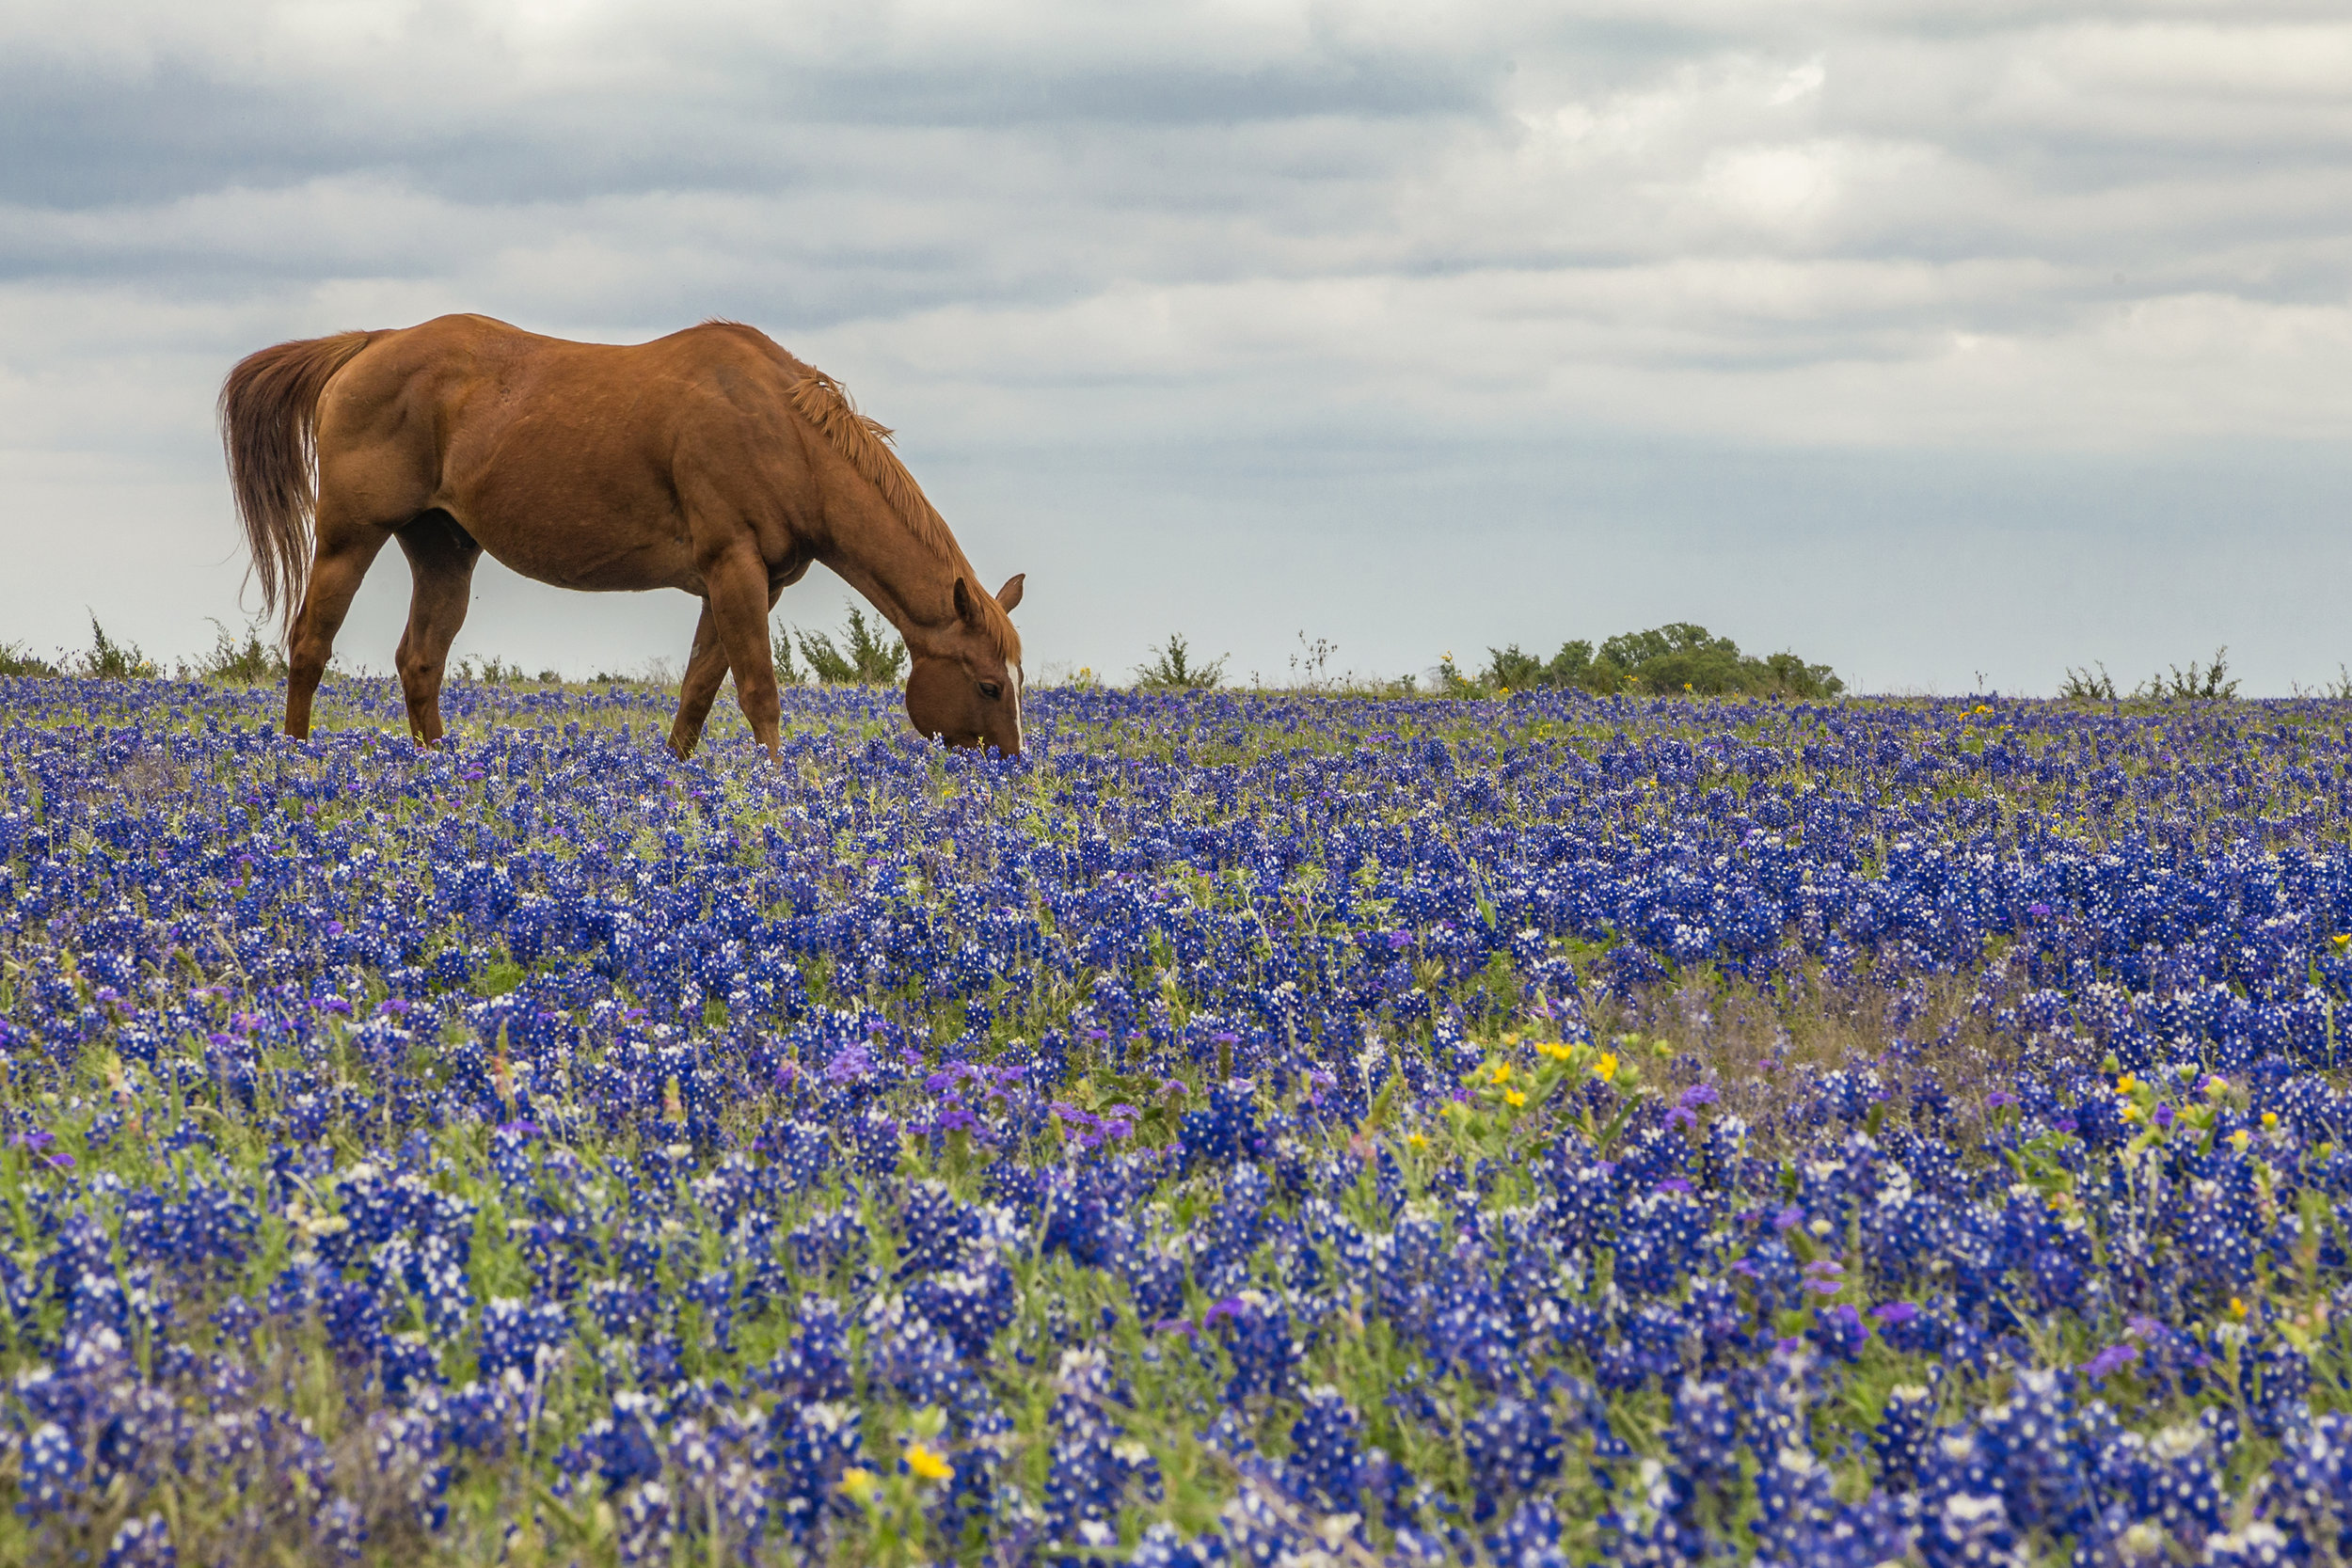 Horse grazes amongst bluebonnets off Williams Dr. 2015 season.